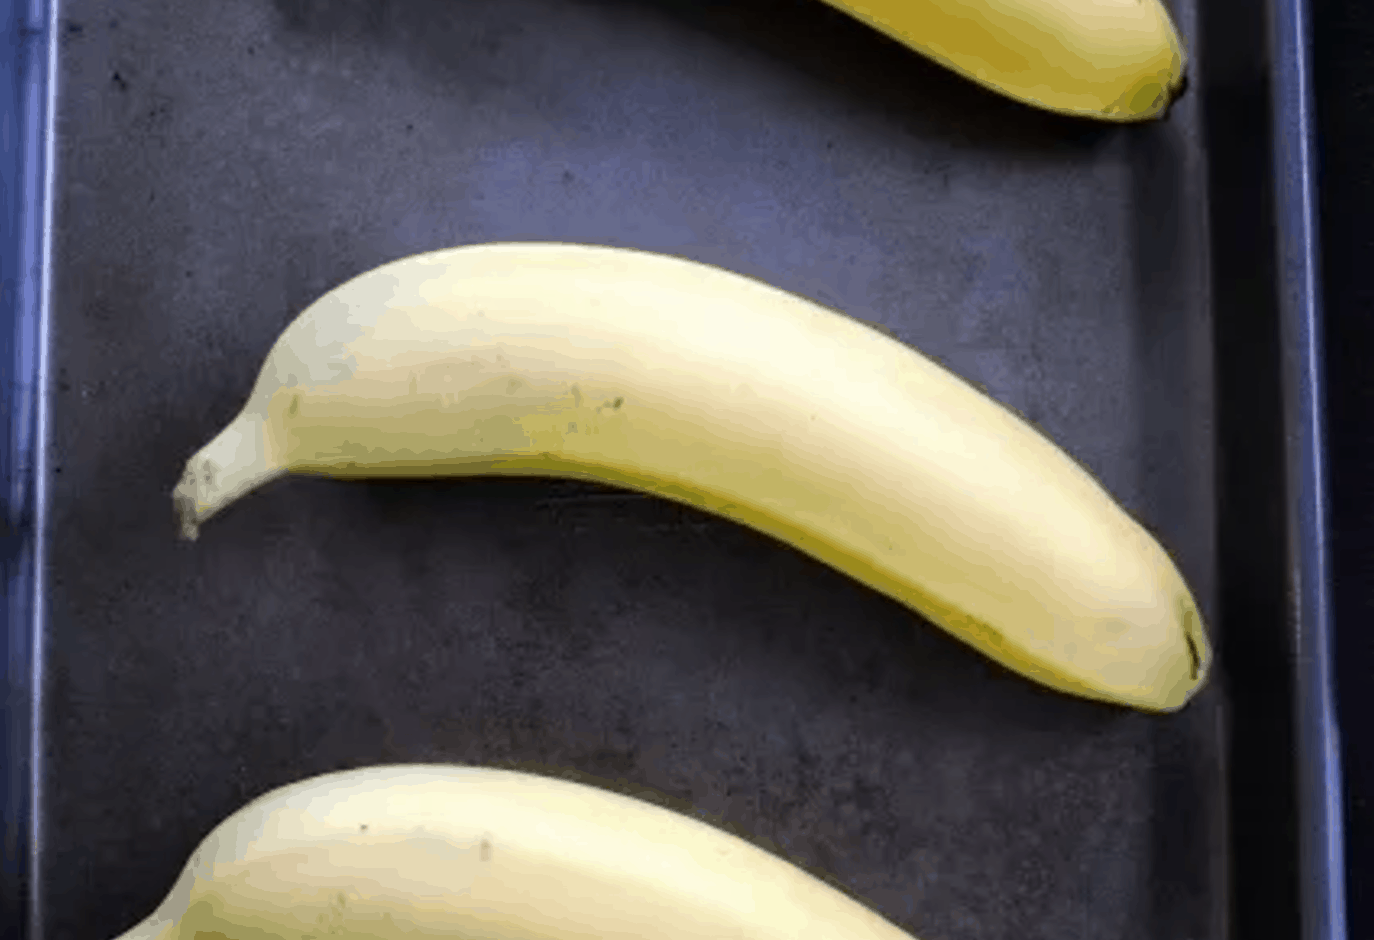 Hack #27: Quickly ripen bananas in the oven